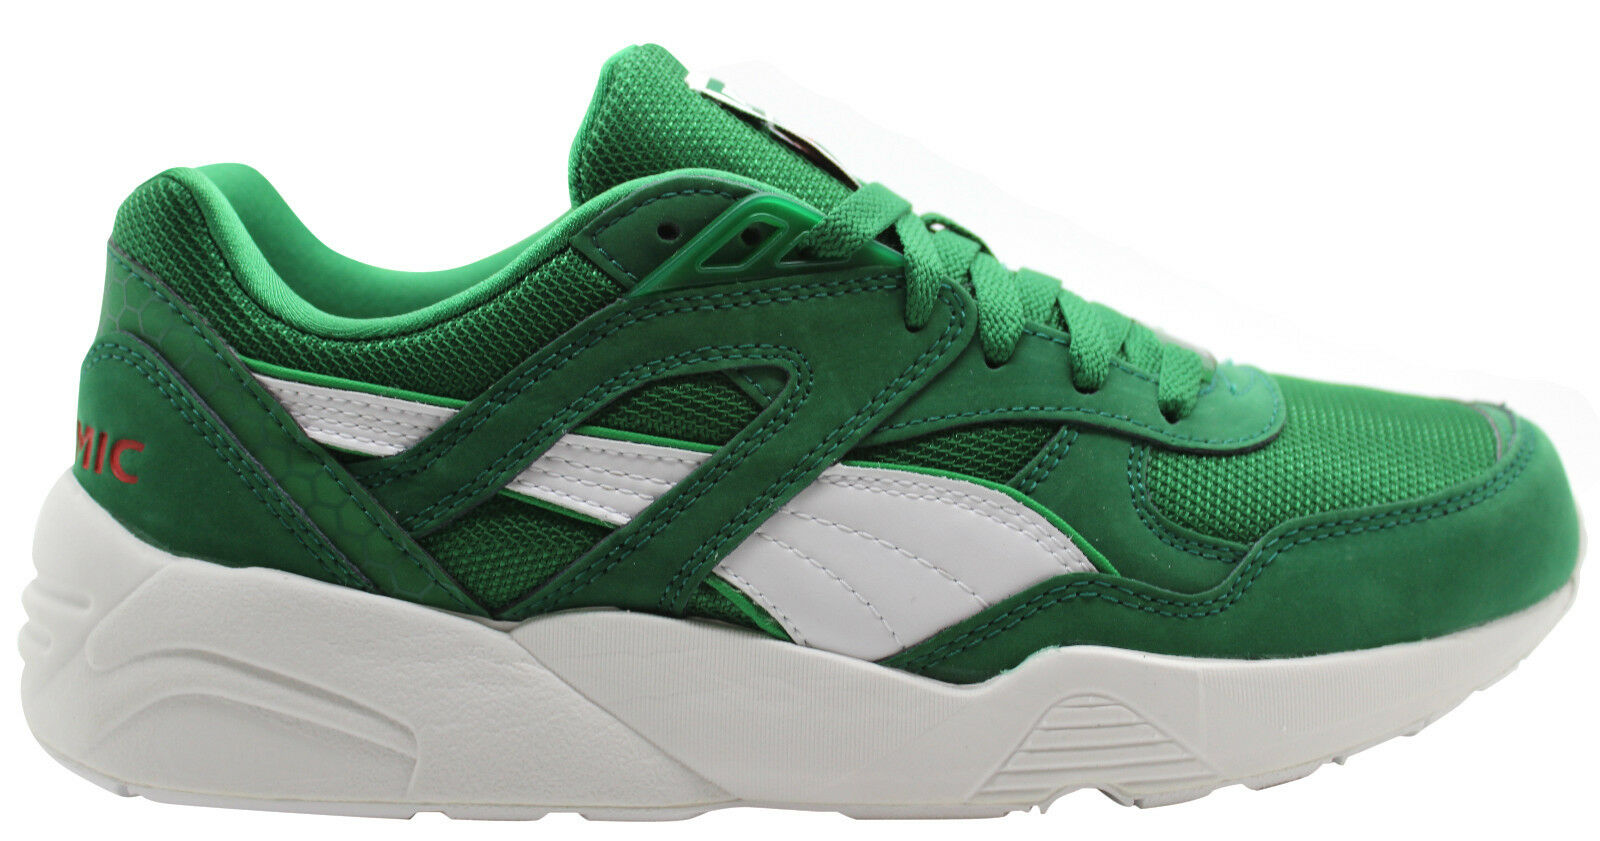 Puma Trinomic R698 X Green Mens Trainers Lace Up Casual Running 358489 01 U90